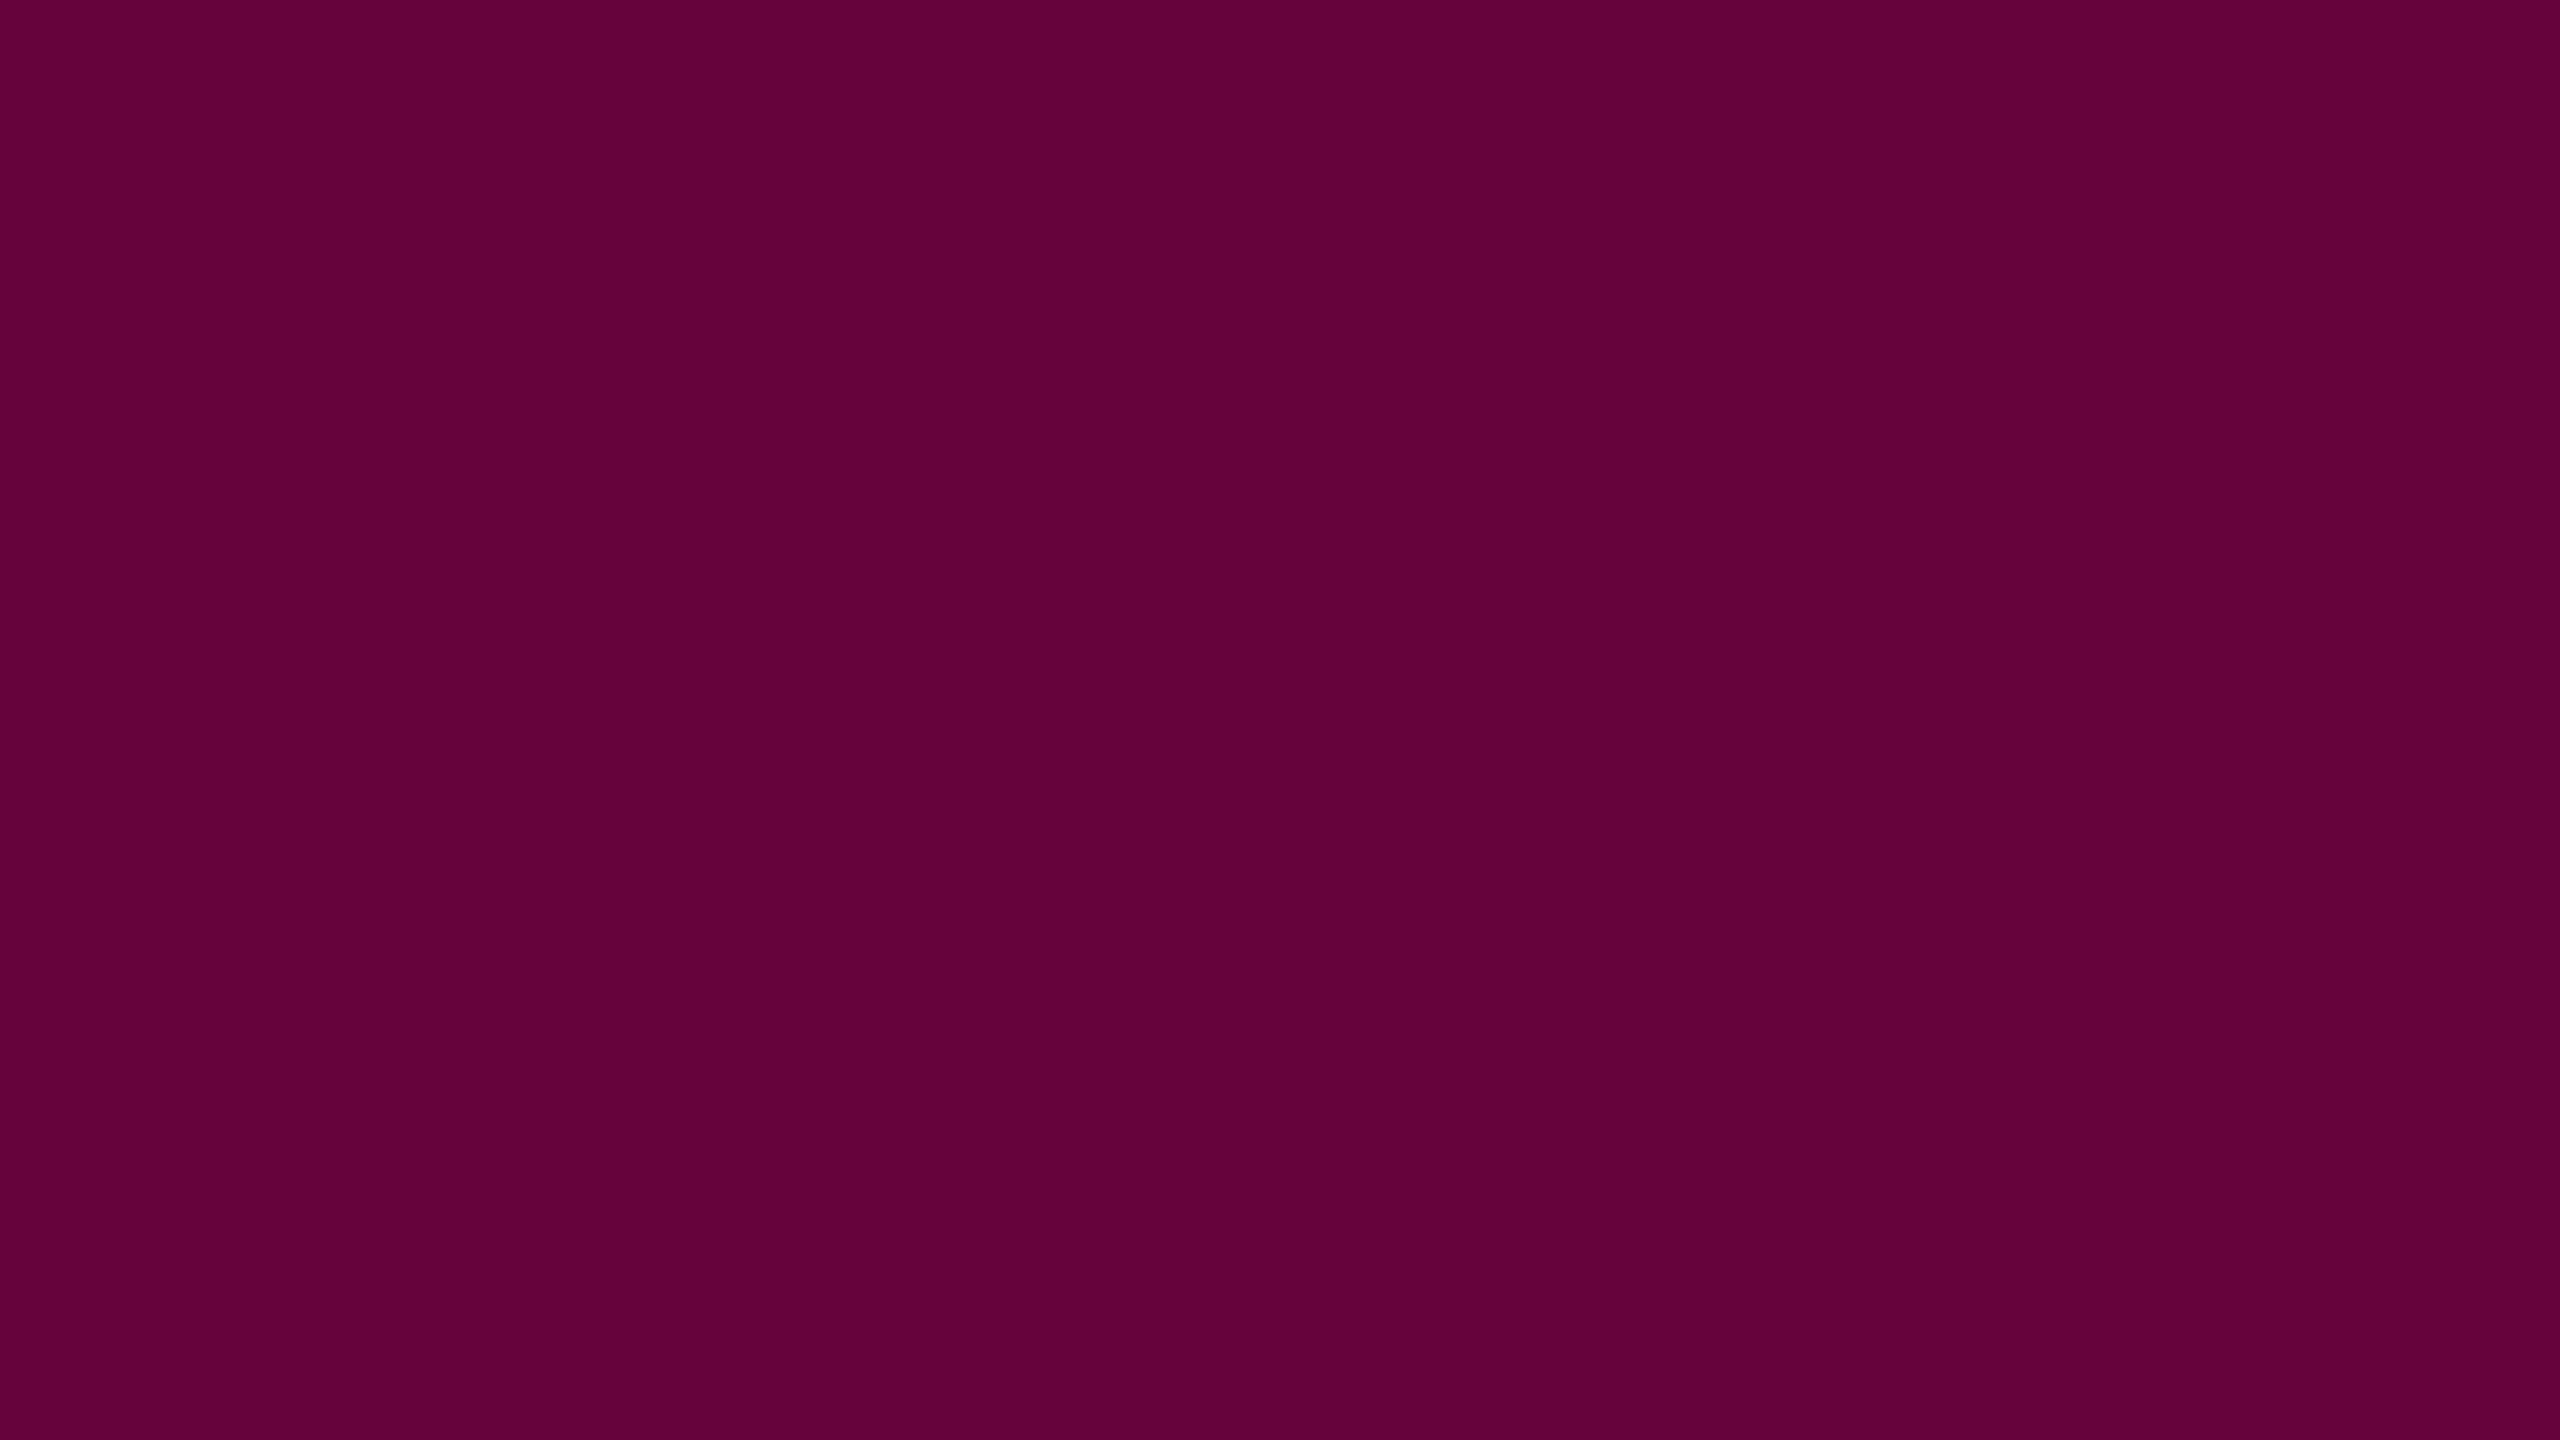 2560x1440 -imperial-purple-solid-color-background.jpg